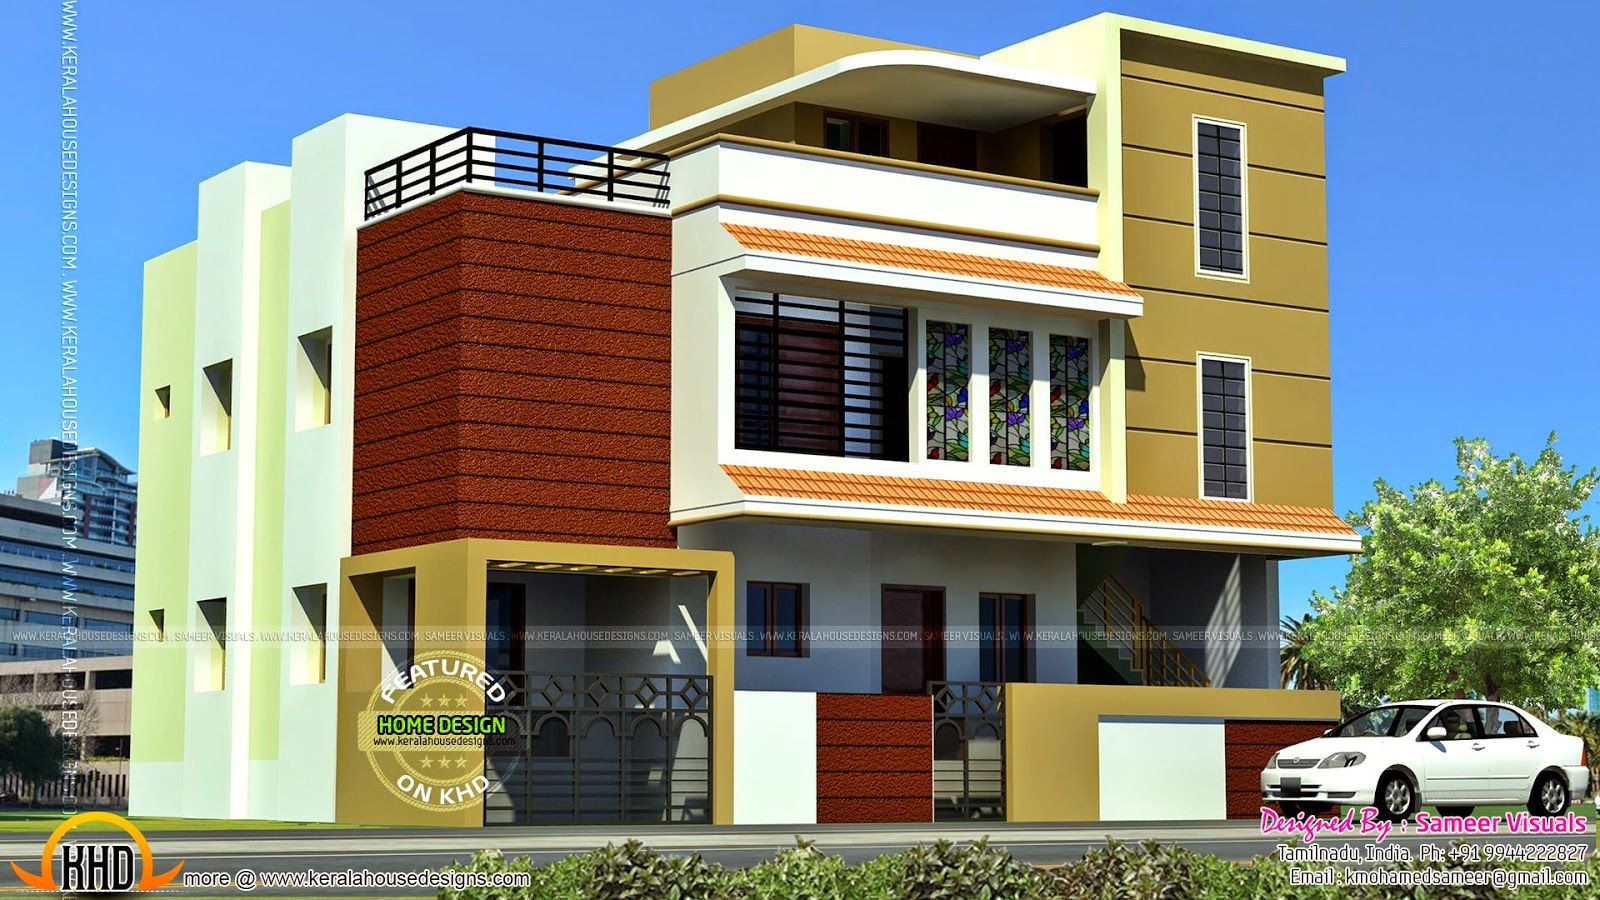 Tamilnadu model house kerala home design and floor plans for Model home plans